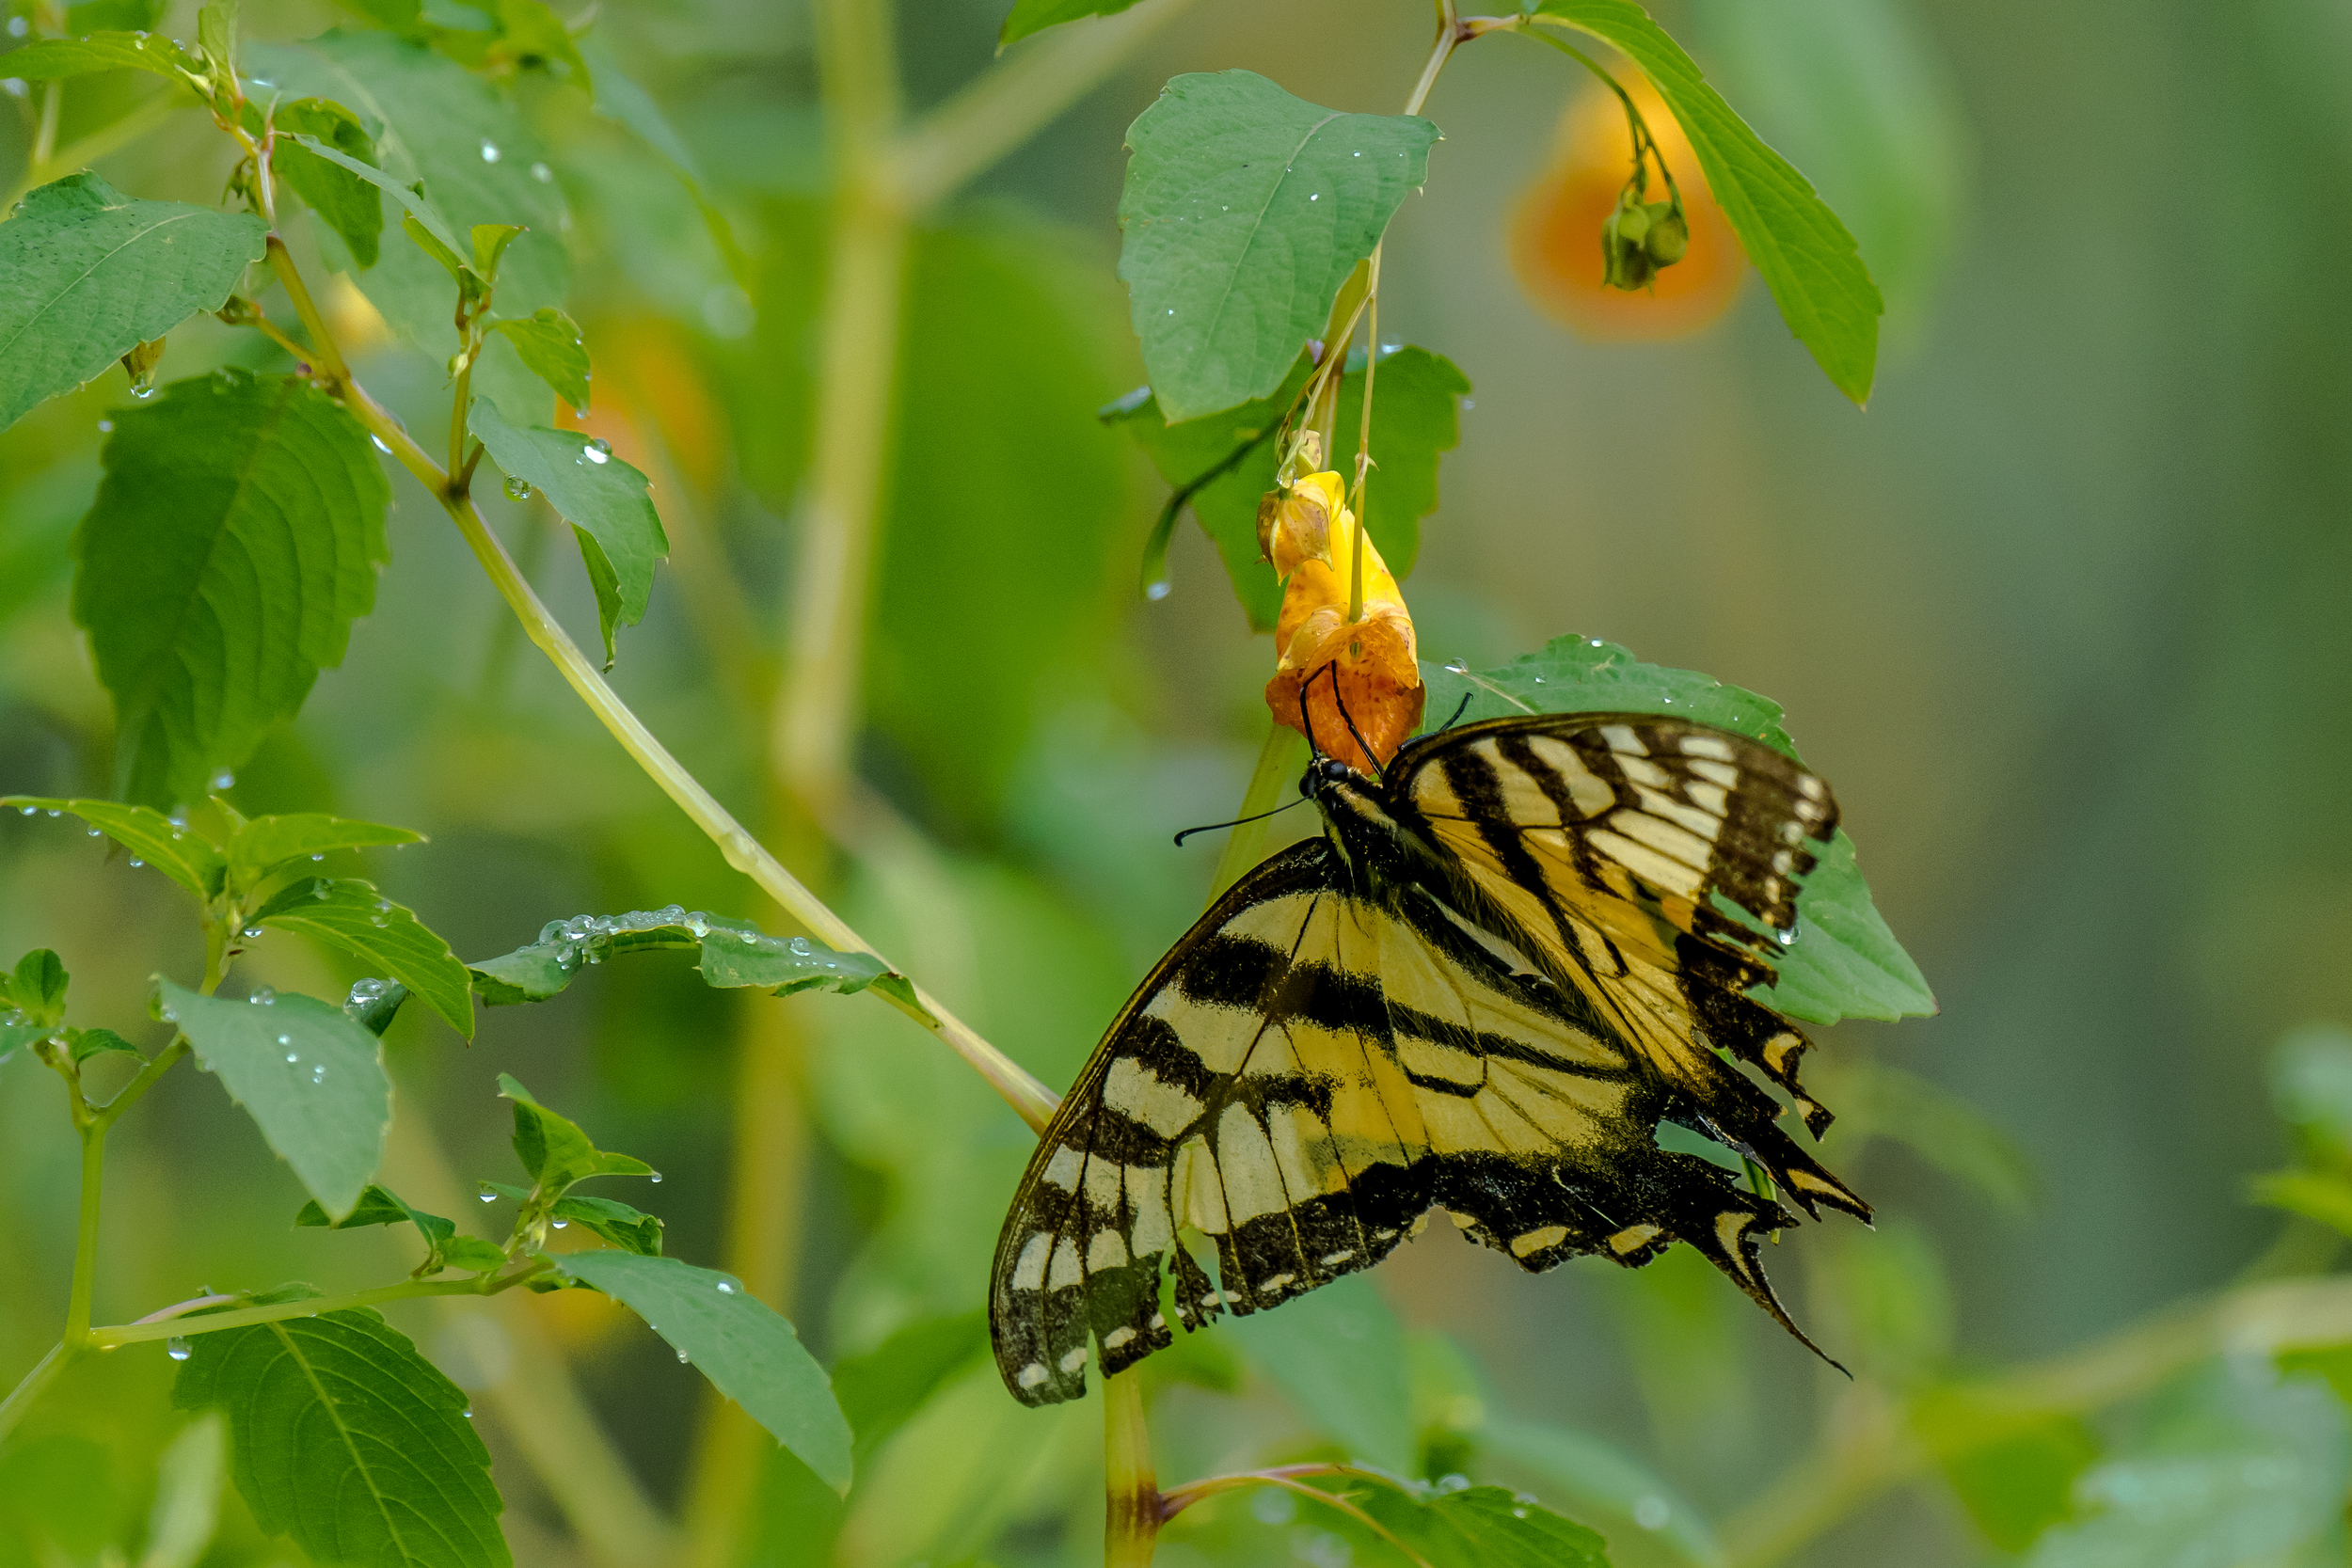 Here is a pretty battered looking tiger swallowtail butterfly that was feeding on this jewel weed plant at pond side a few days ago. I just happen to see it in the early morning while the dew was still all over the plants and grass. 7/31/16